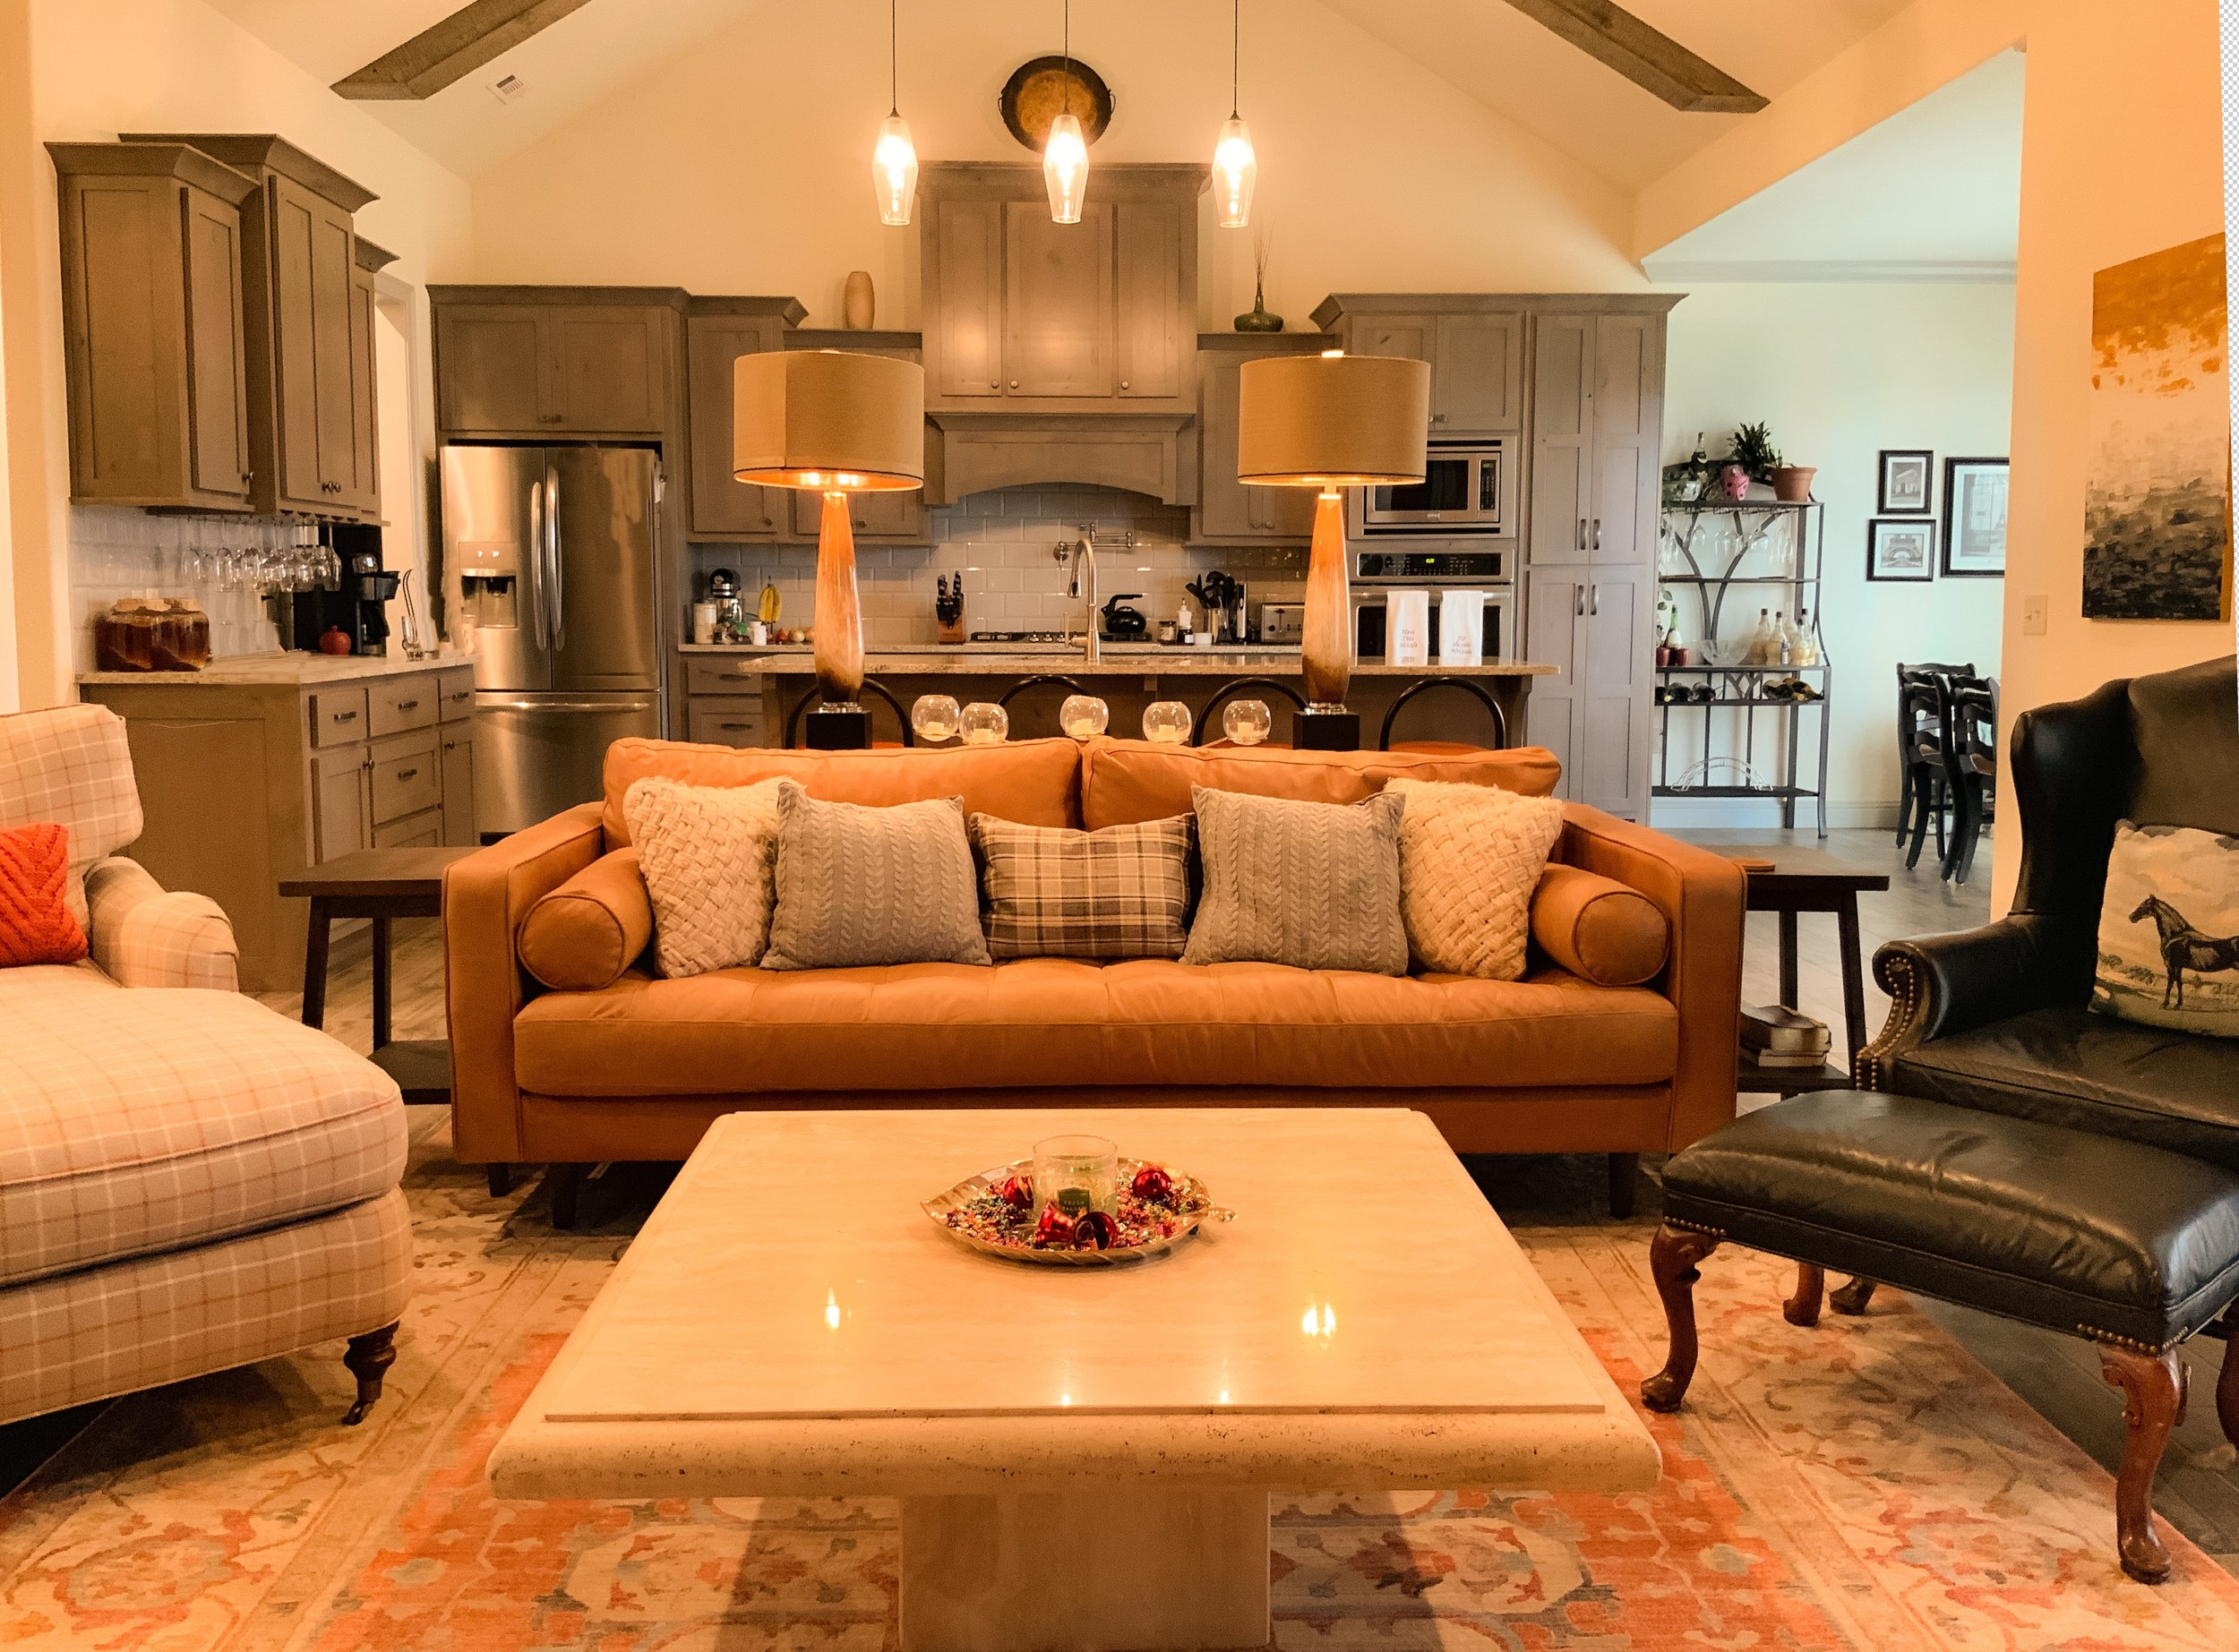 Orange and Gray Accents Carry This Modern Meets English Country Interior